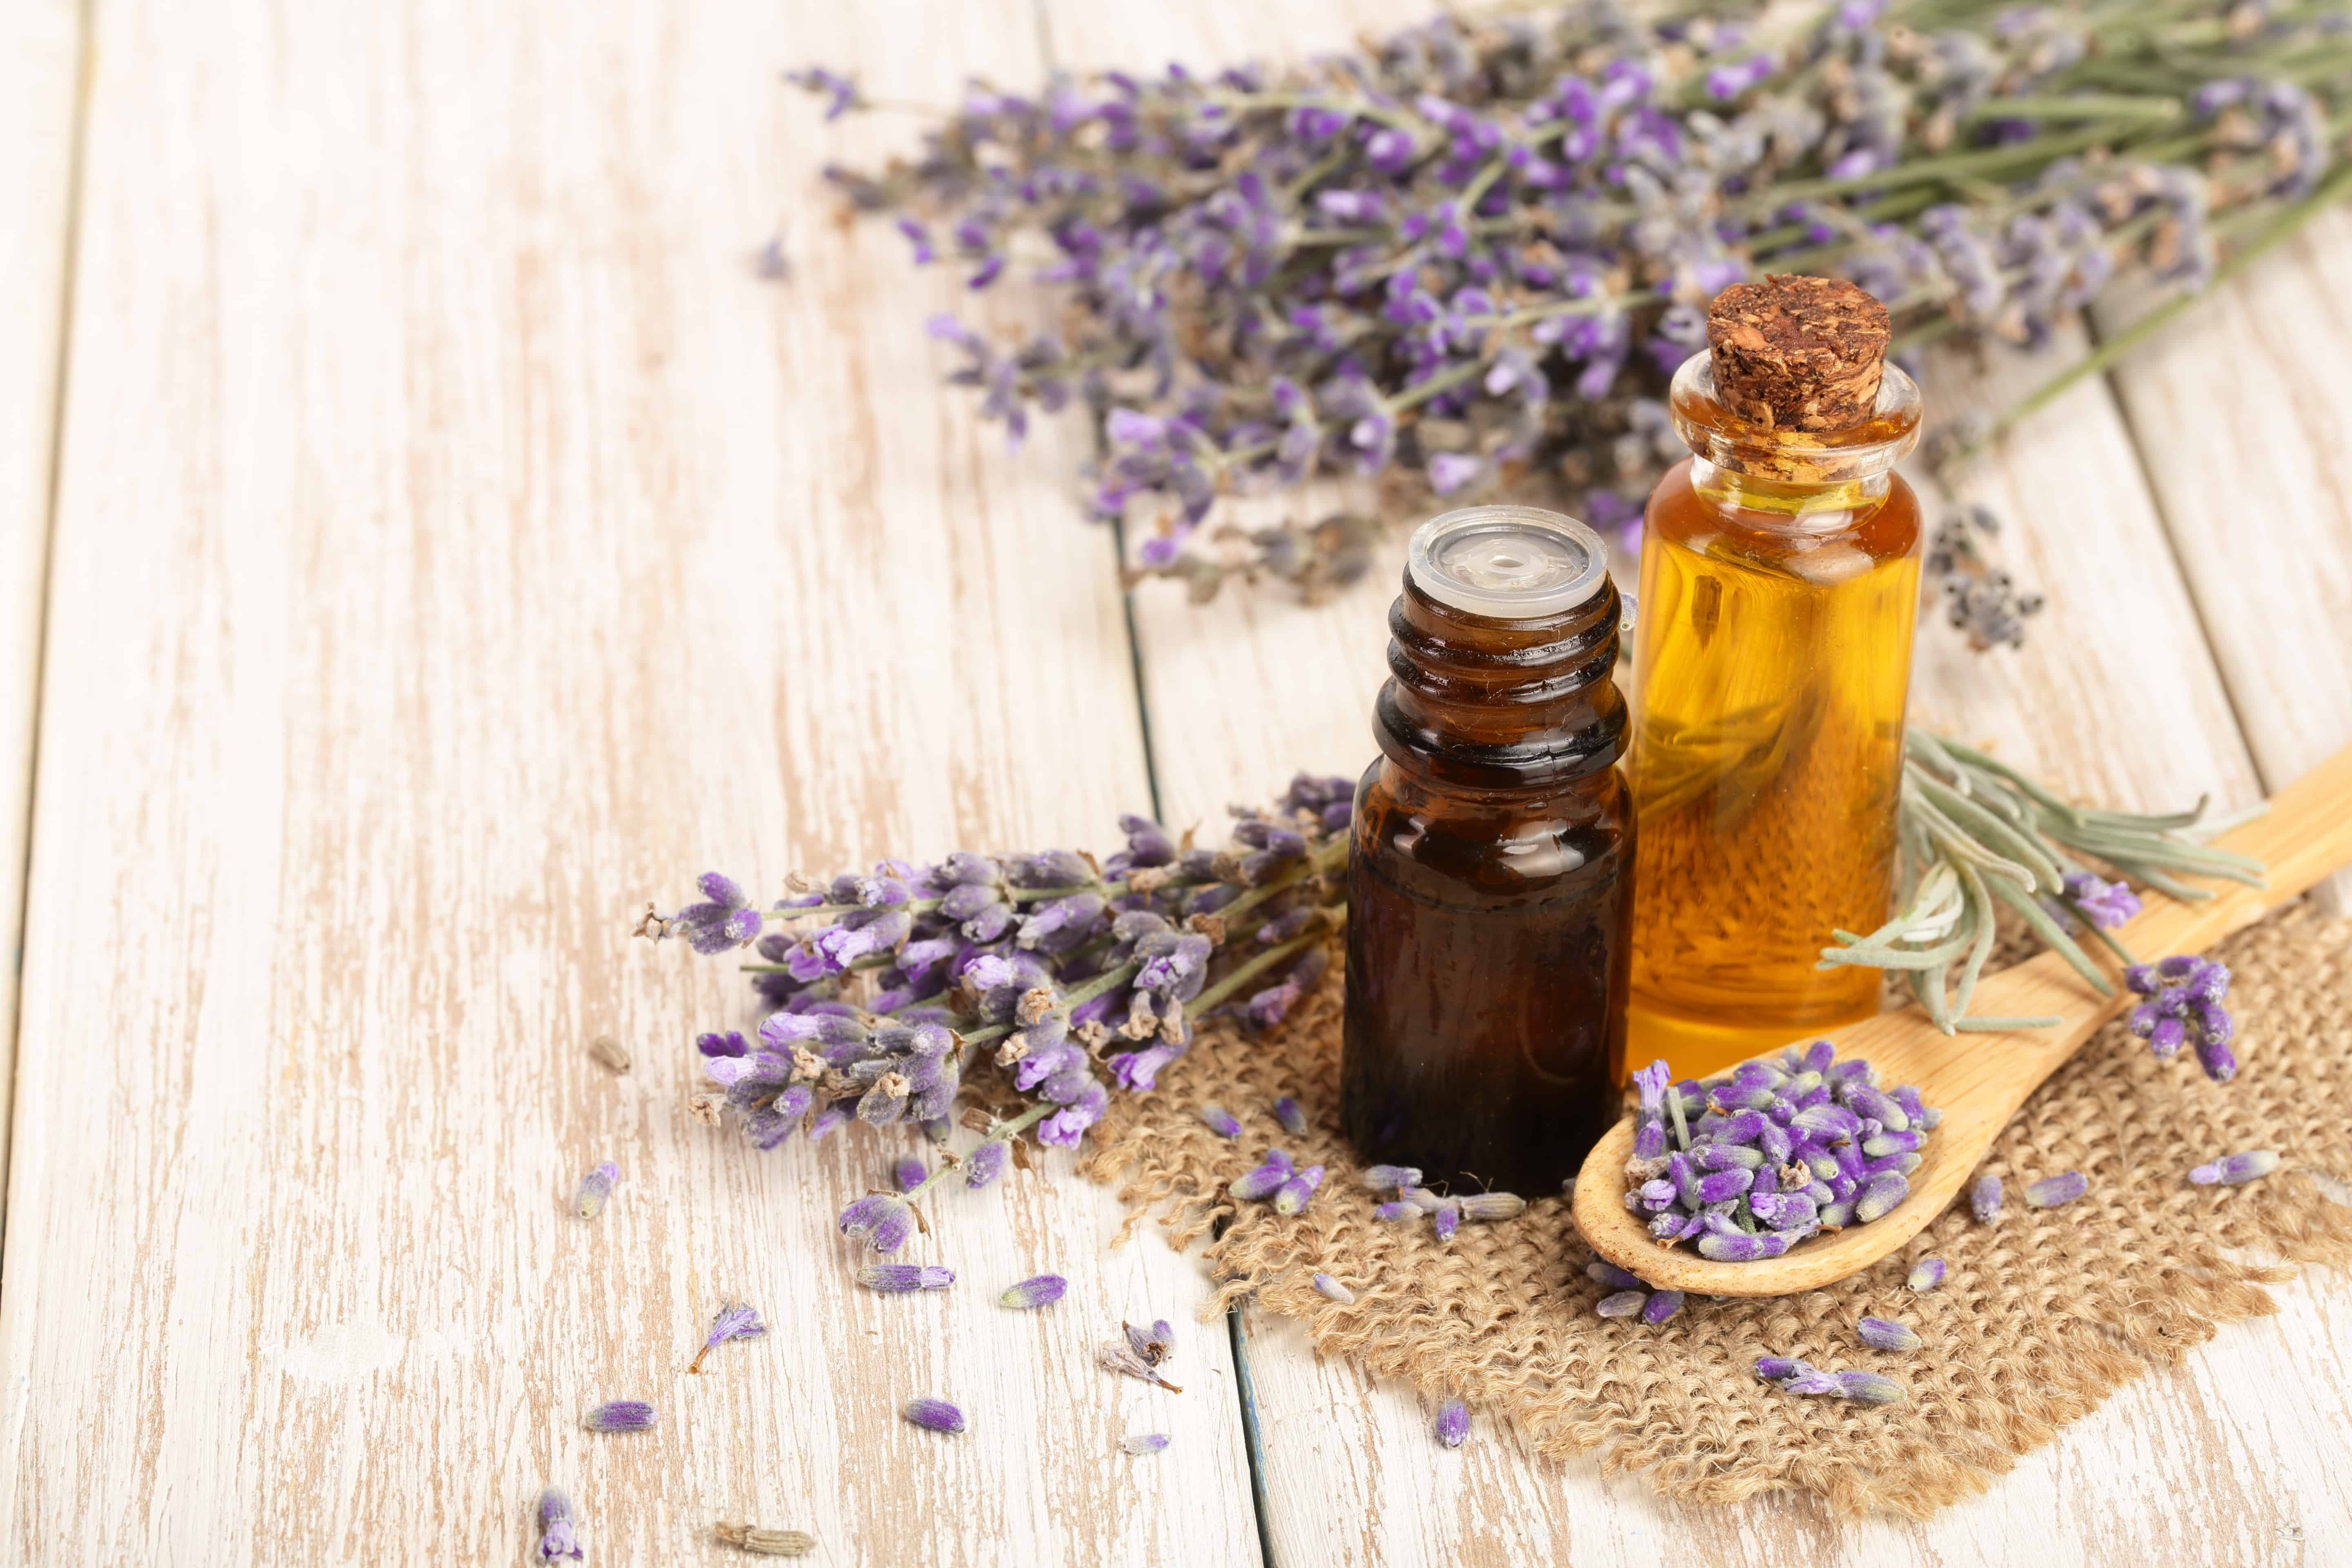 Image of essential oil bottle and lavender for How to buy essential oils